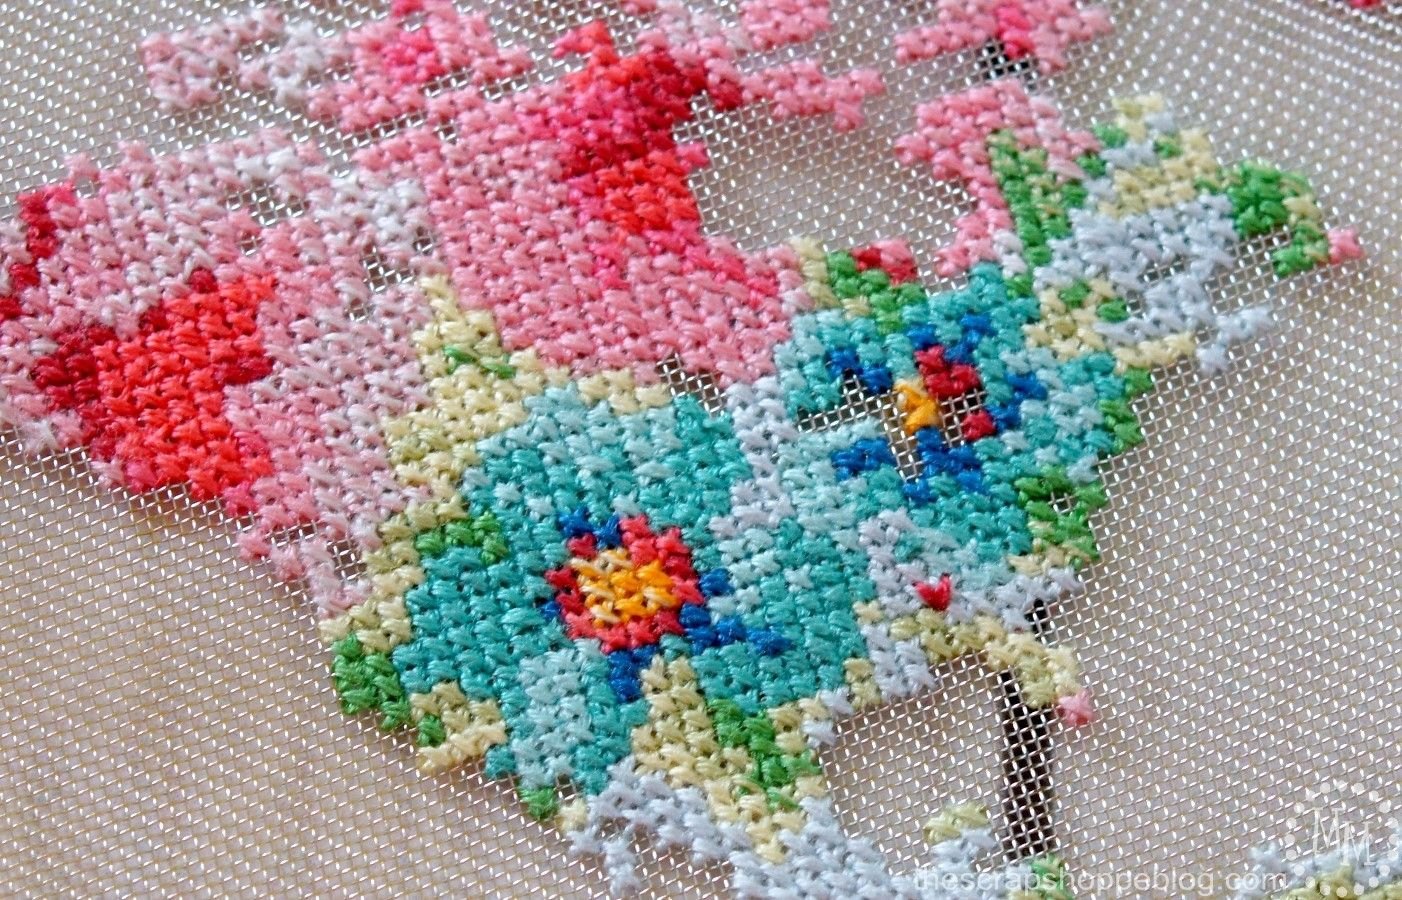 Make a framed floral cross-stitch map on new stitchable mesh from DMC! This is a sponsored post on behalf of DMC. As always, all opinions are my own. Cross-stitch was the first craft I can remember my mom teaching me when I was young. It was fun and a great way to pass the time, [...]